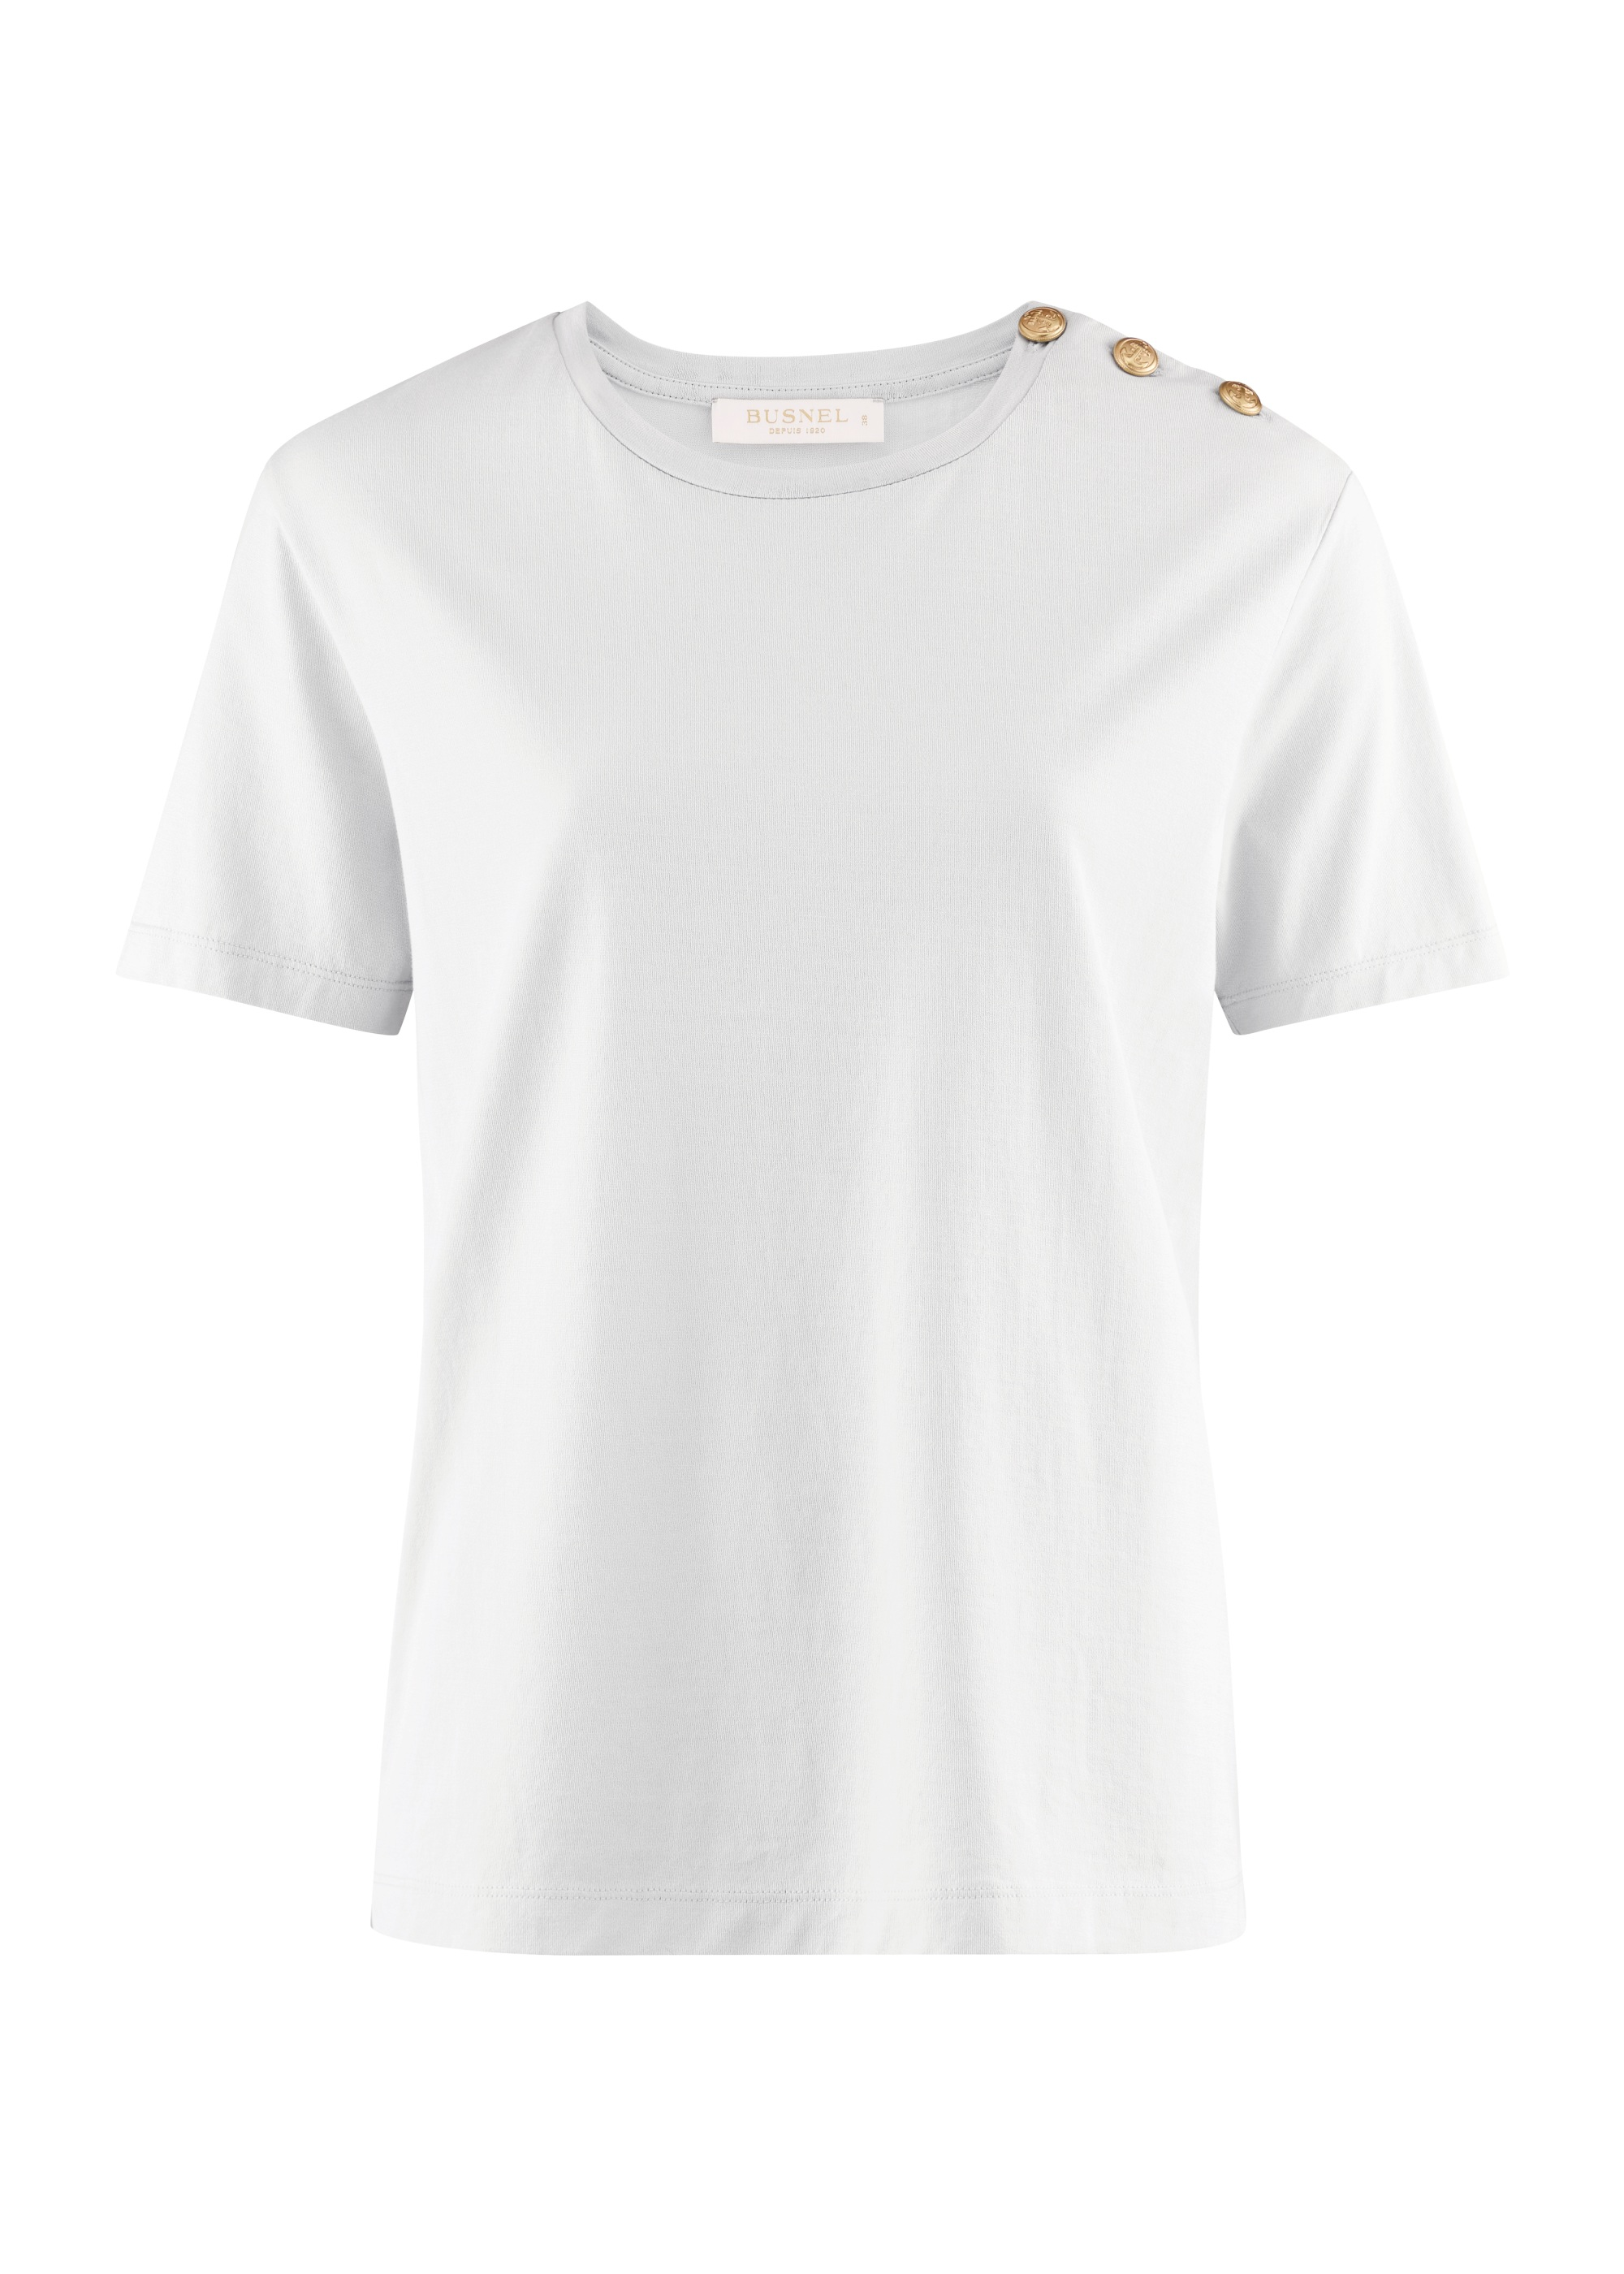 Toulon T-shirt Clear White-1